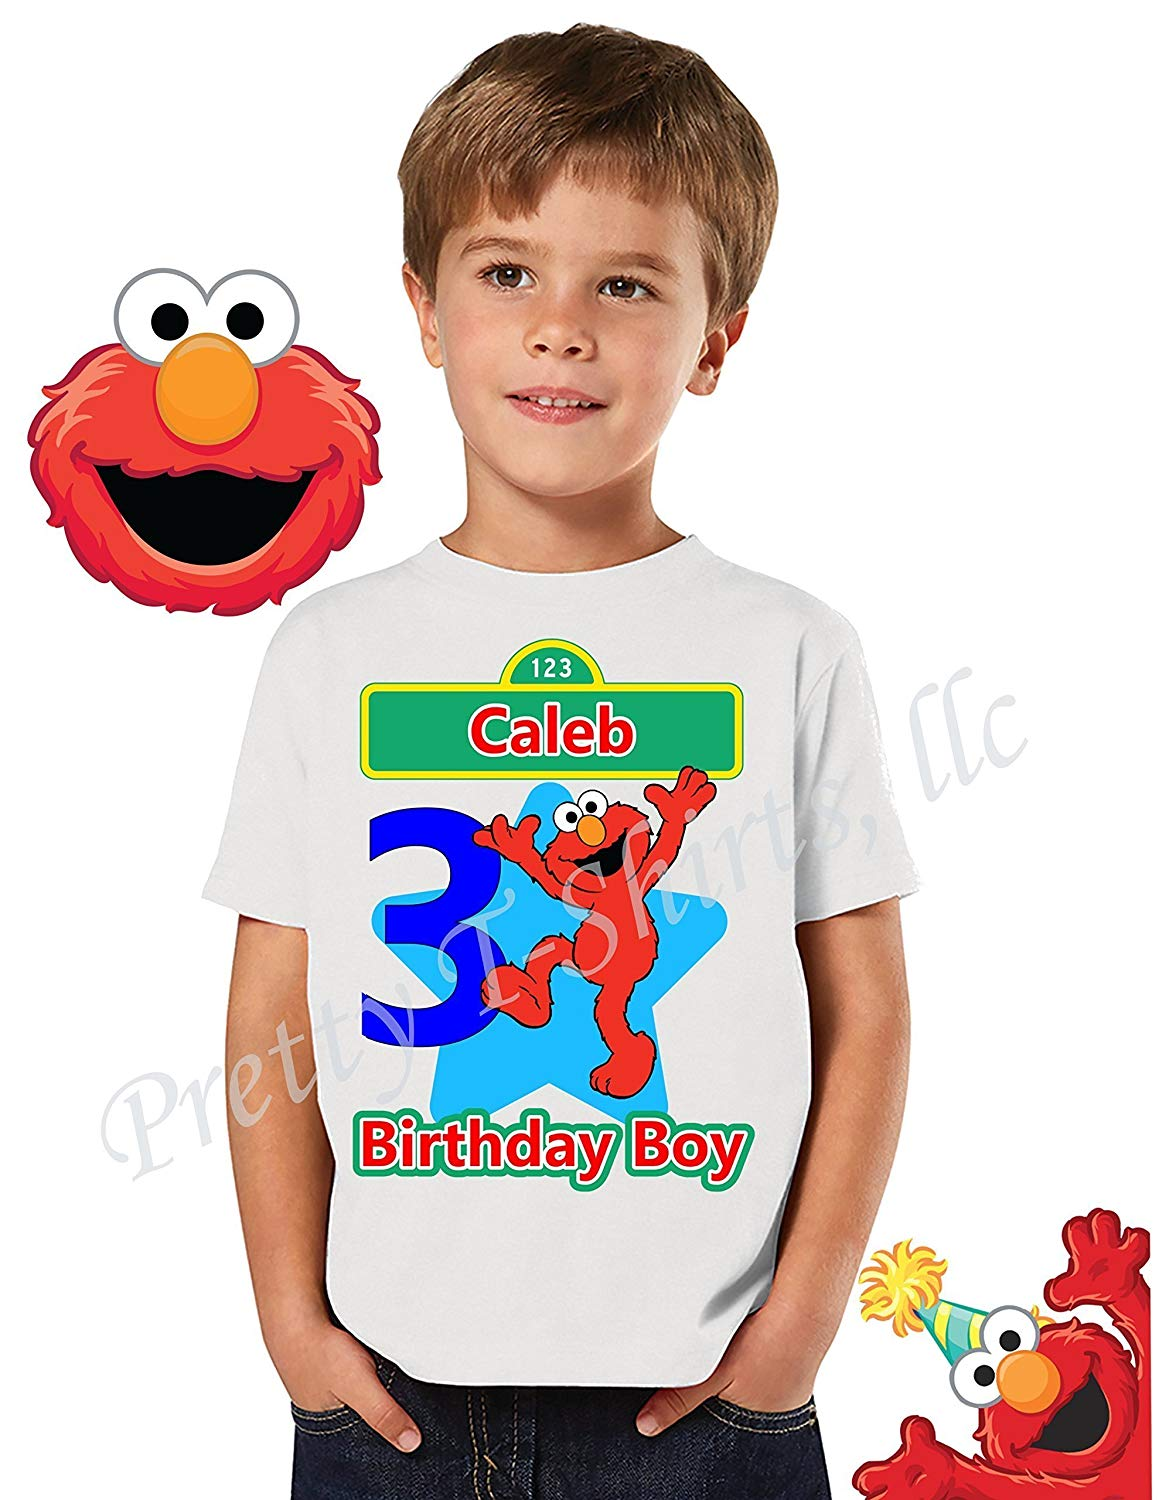 c26c5bba The Sesame Street Count t-shirt features the lovable fa... Get Quotations ·  Elmo Birthday Shirt, FAMILY Birthday Shirt, Elmo Birthday Boy Shirt, Elmo  Shirt ...